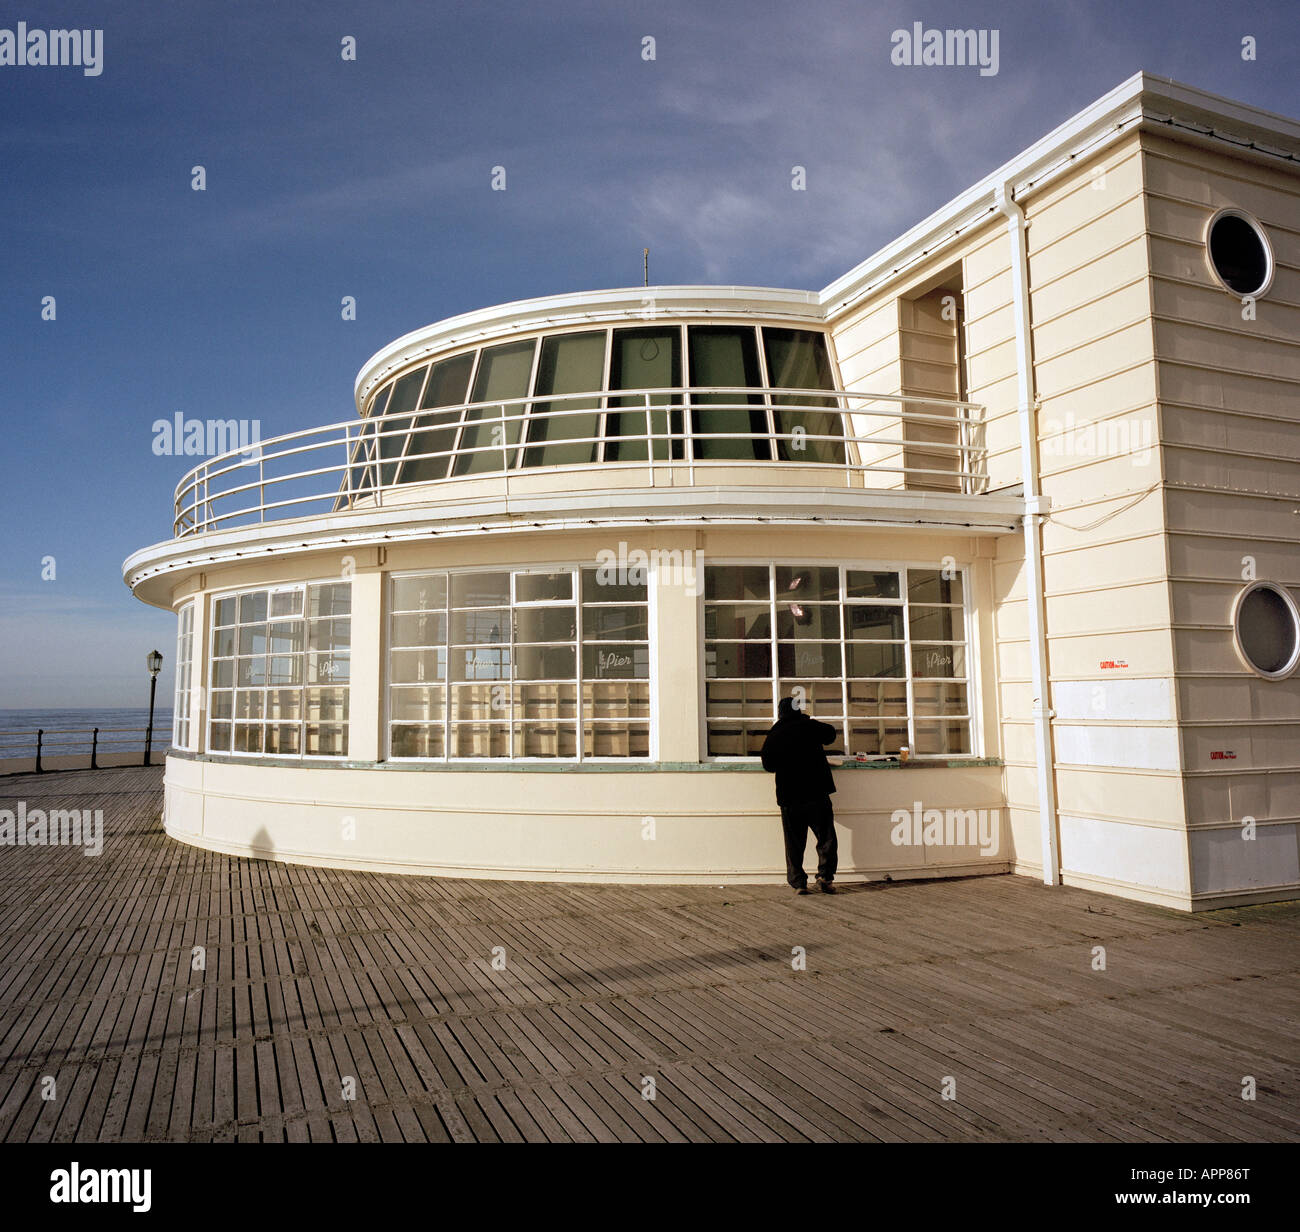 Architecture of Worthing Pier West Sussex England UK - Stock Image